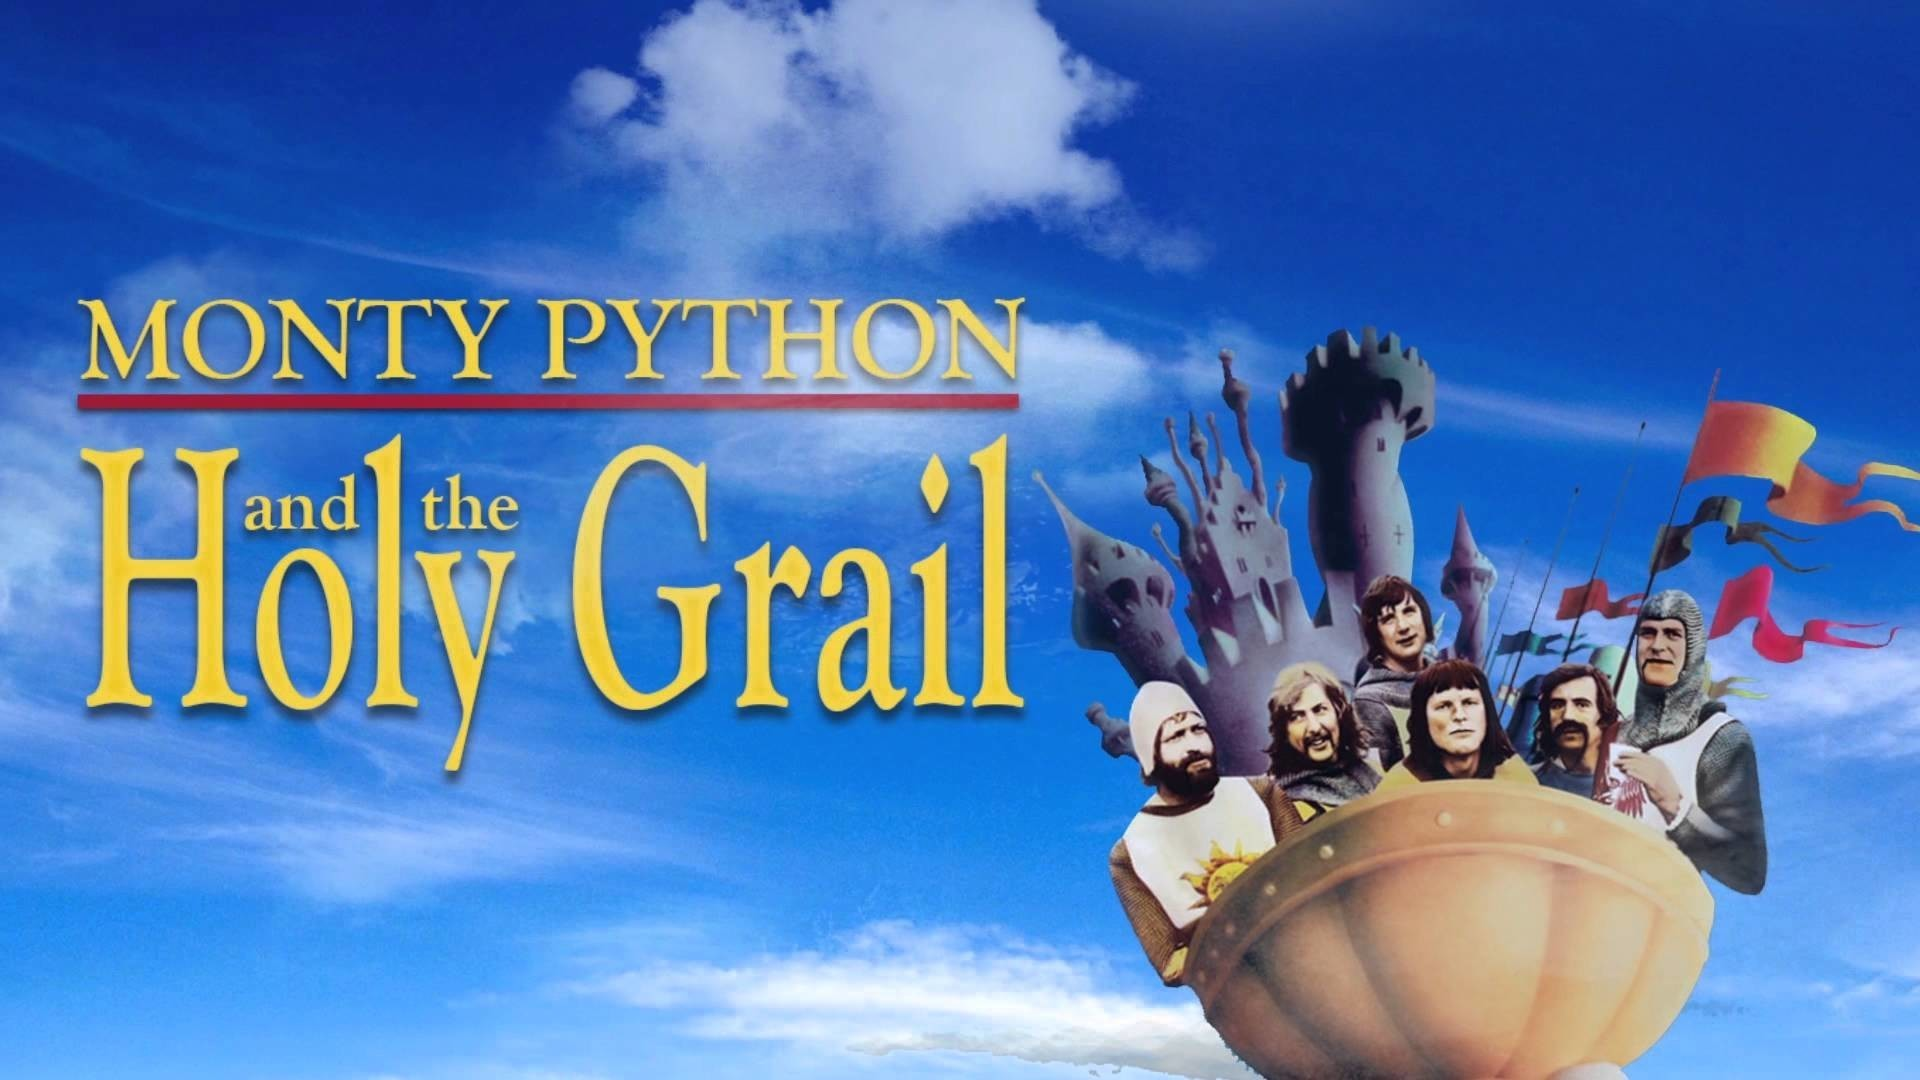 Monty Python Wallpaper 58 Pictures